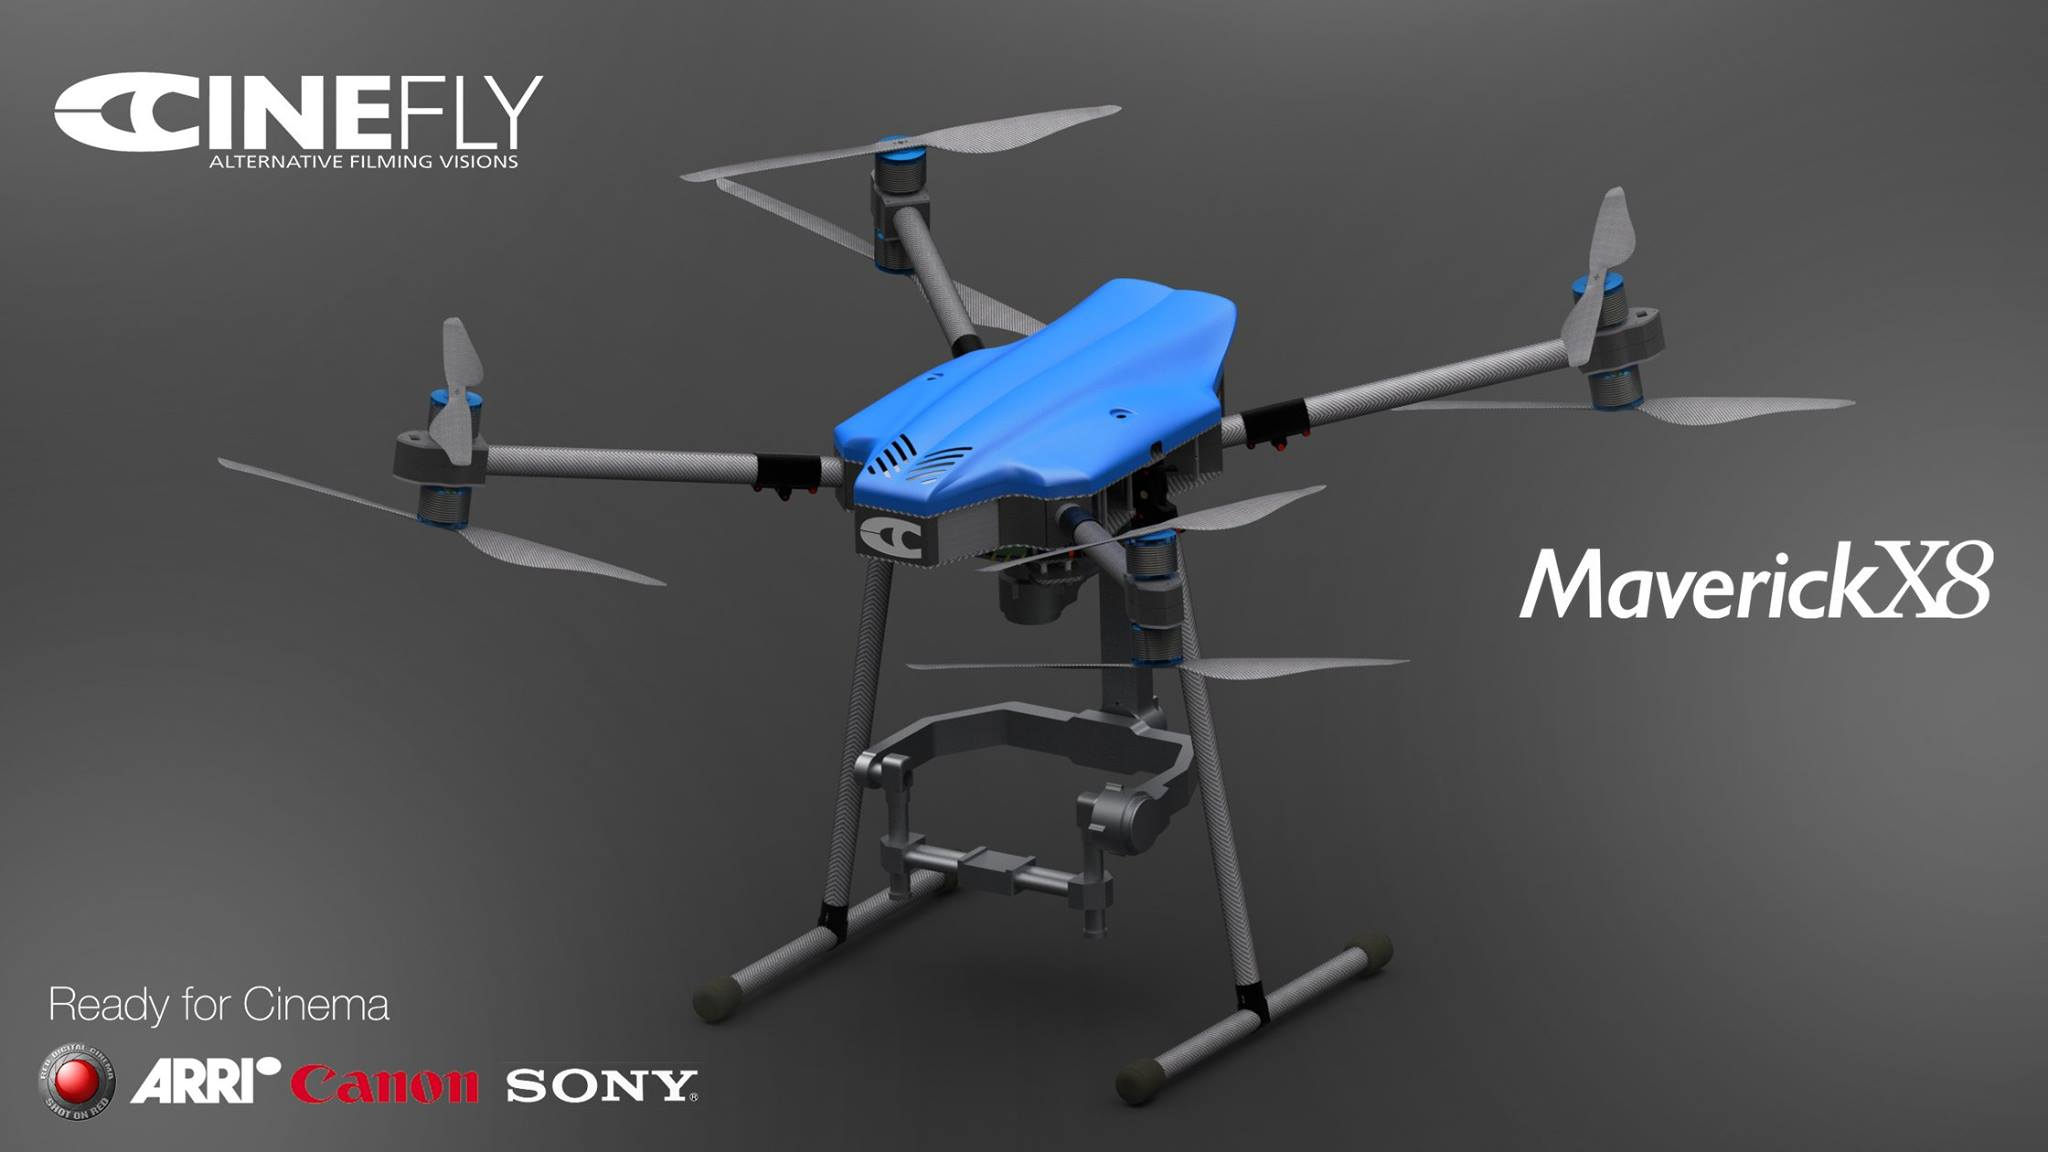 Cinefly MAVERICK X8 Drone CINEMA